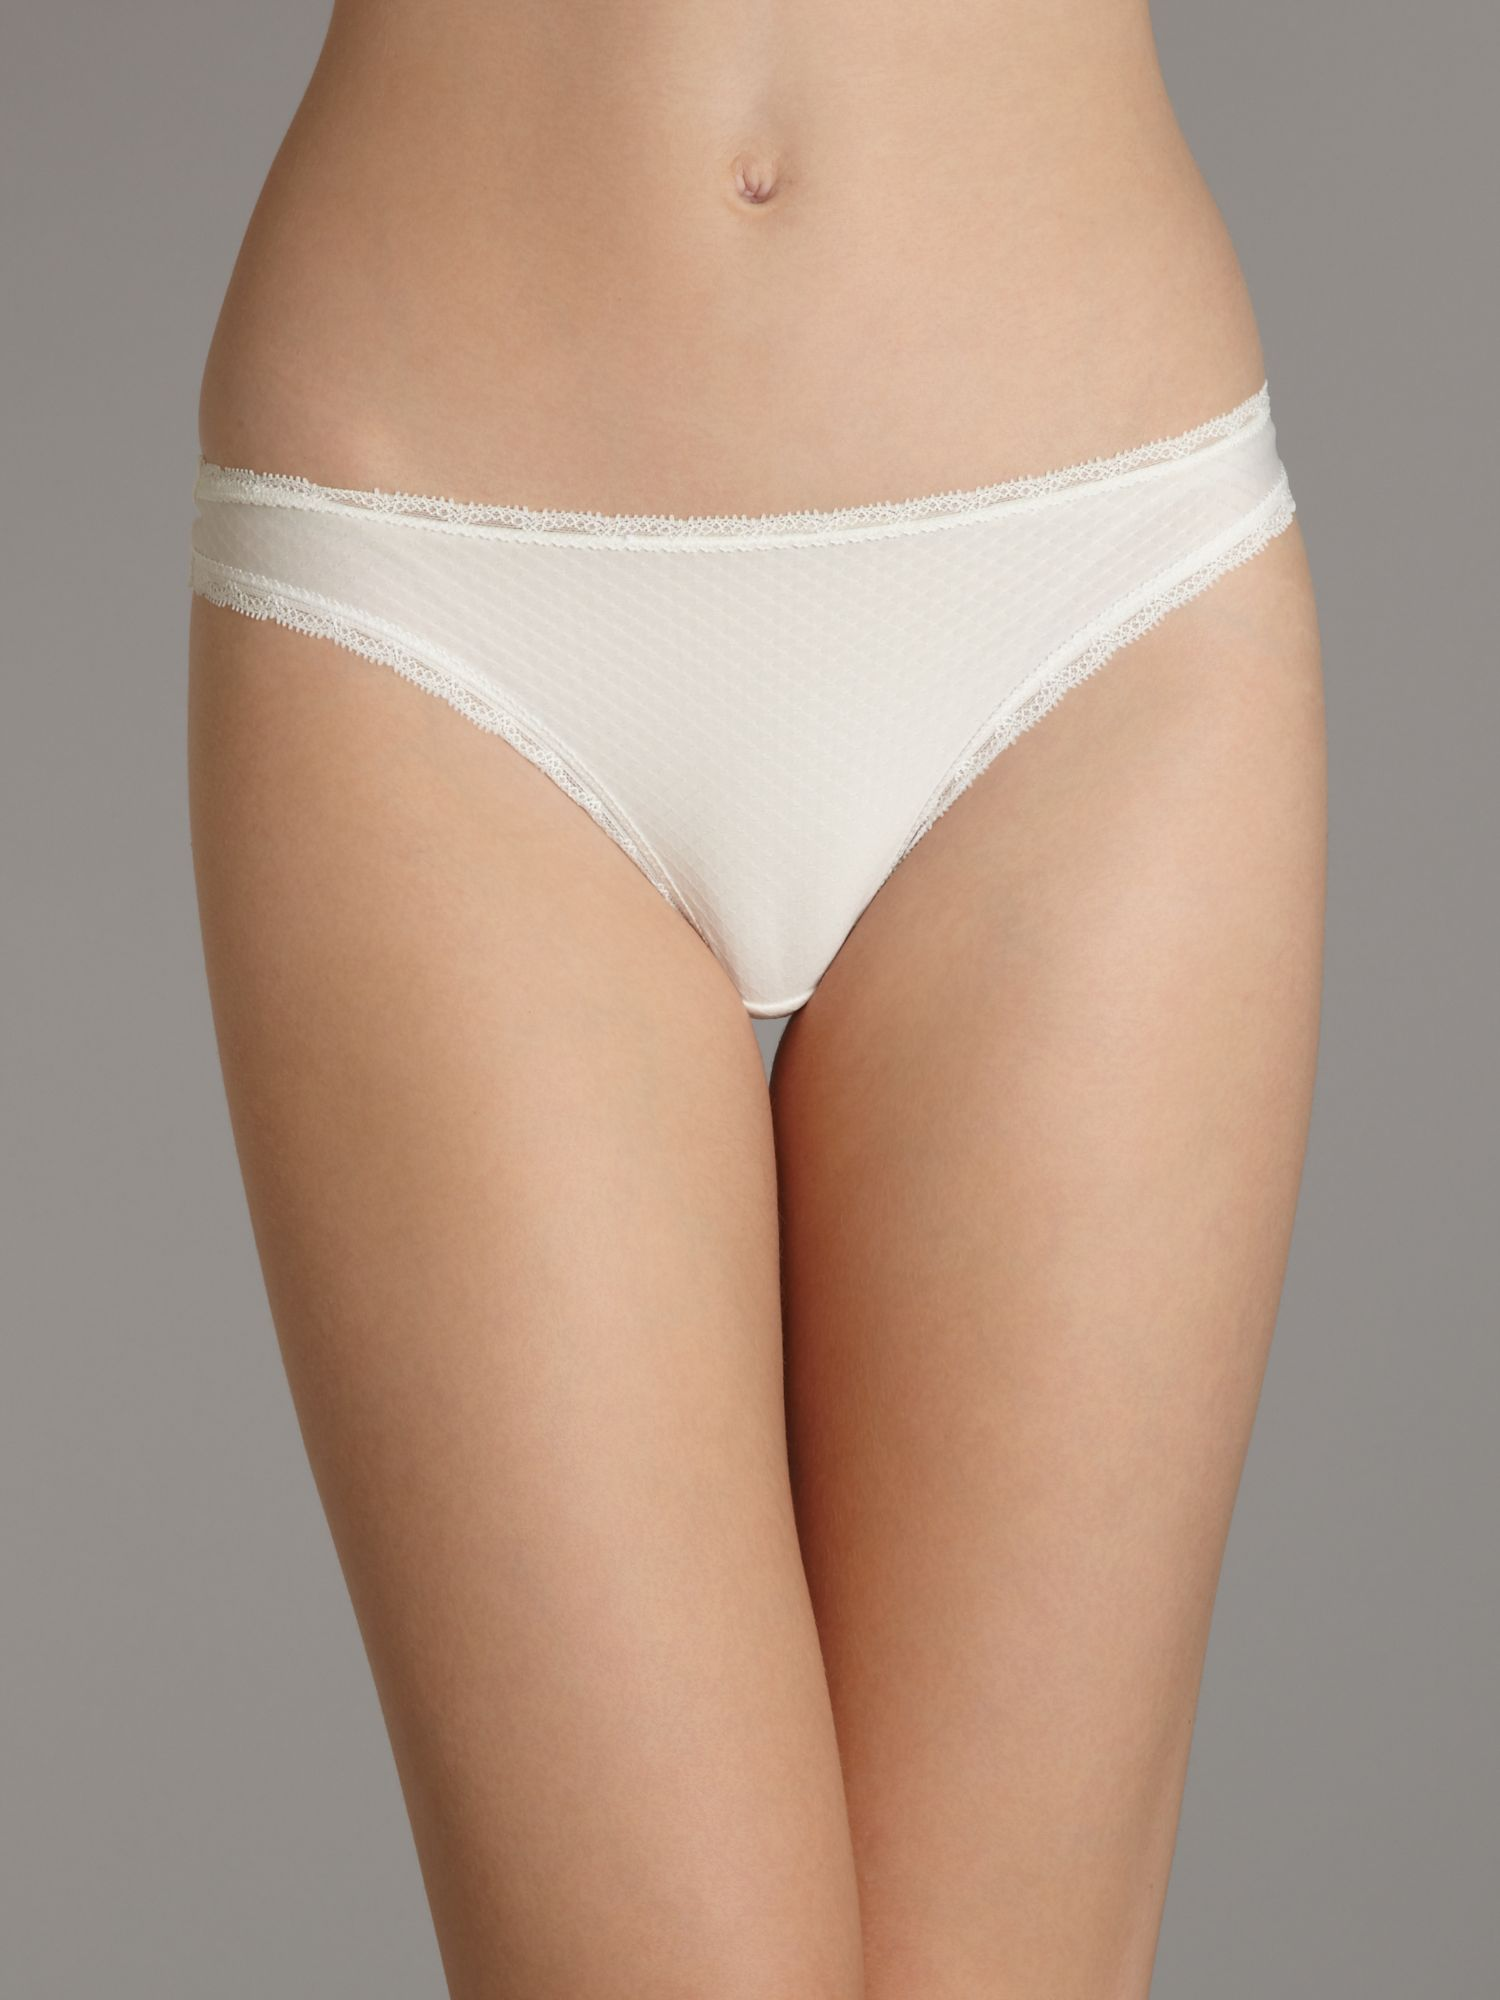 Nuage sweet thong